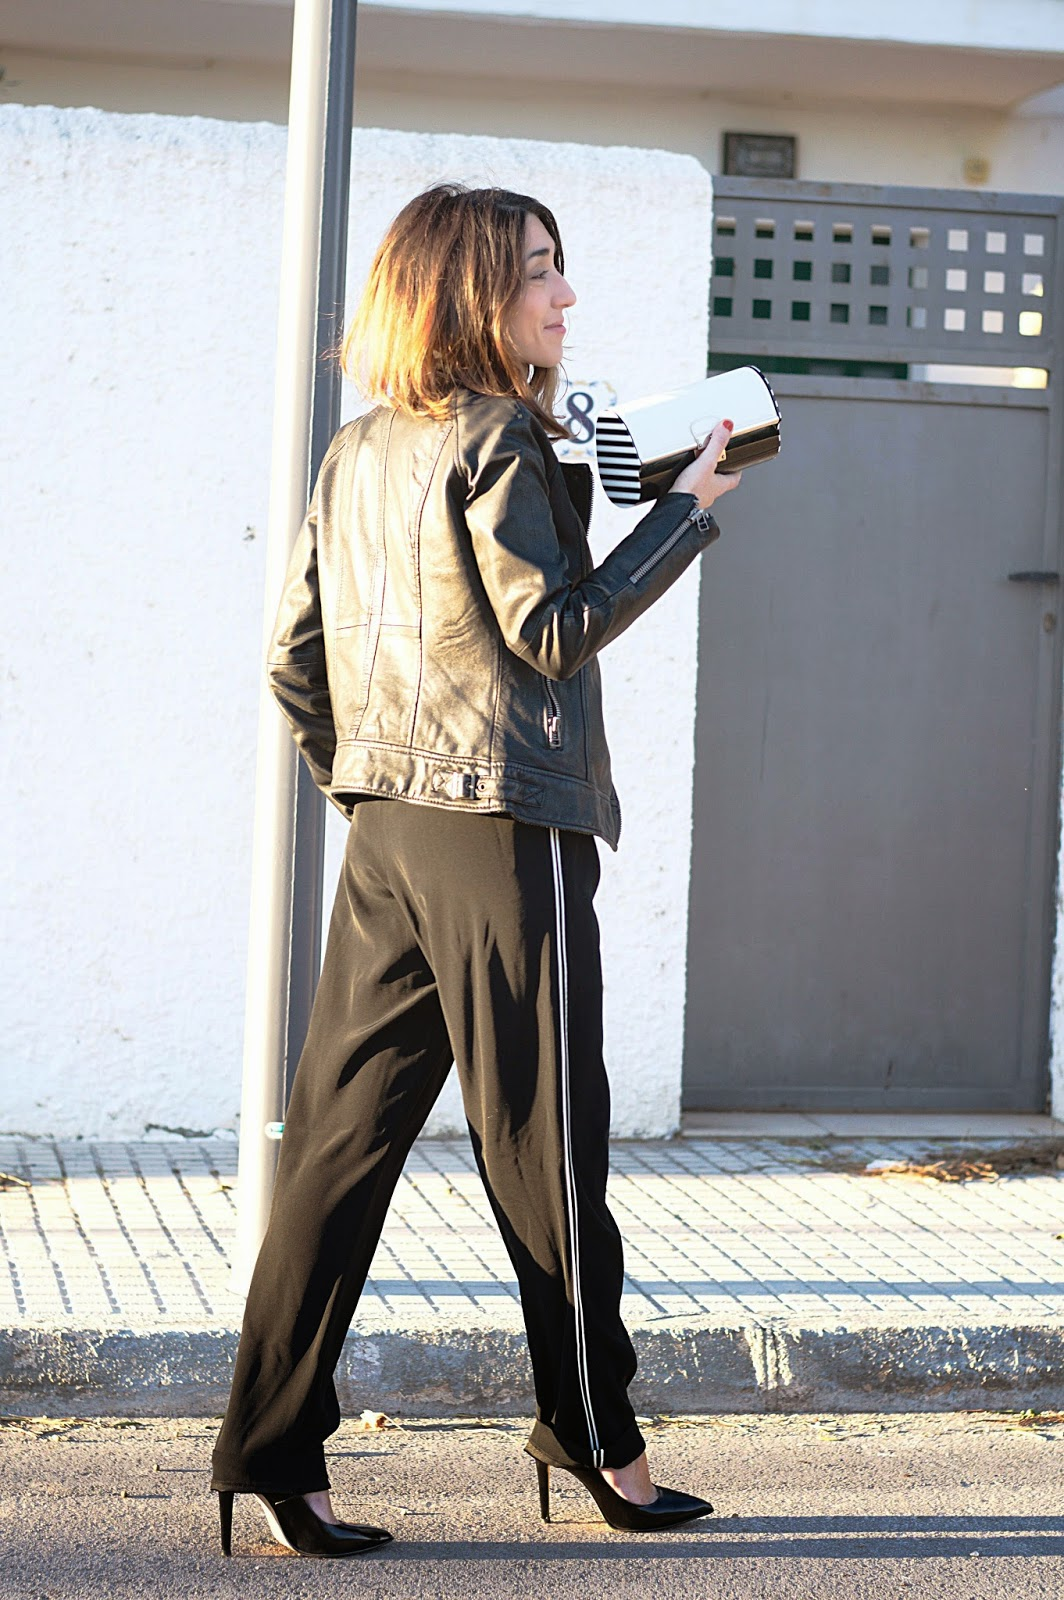 Pantalones Elizabeth & James, Top y Perfecto Mango, Clutch Marc Jacobs, Stilettos Menbur